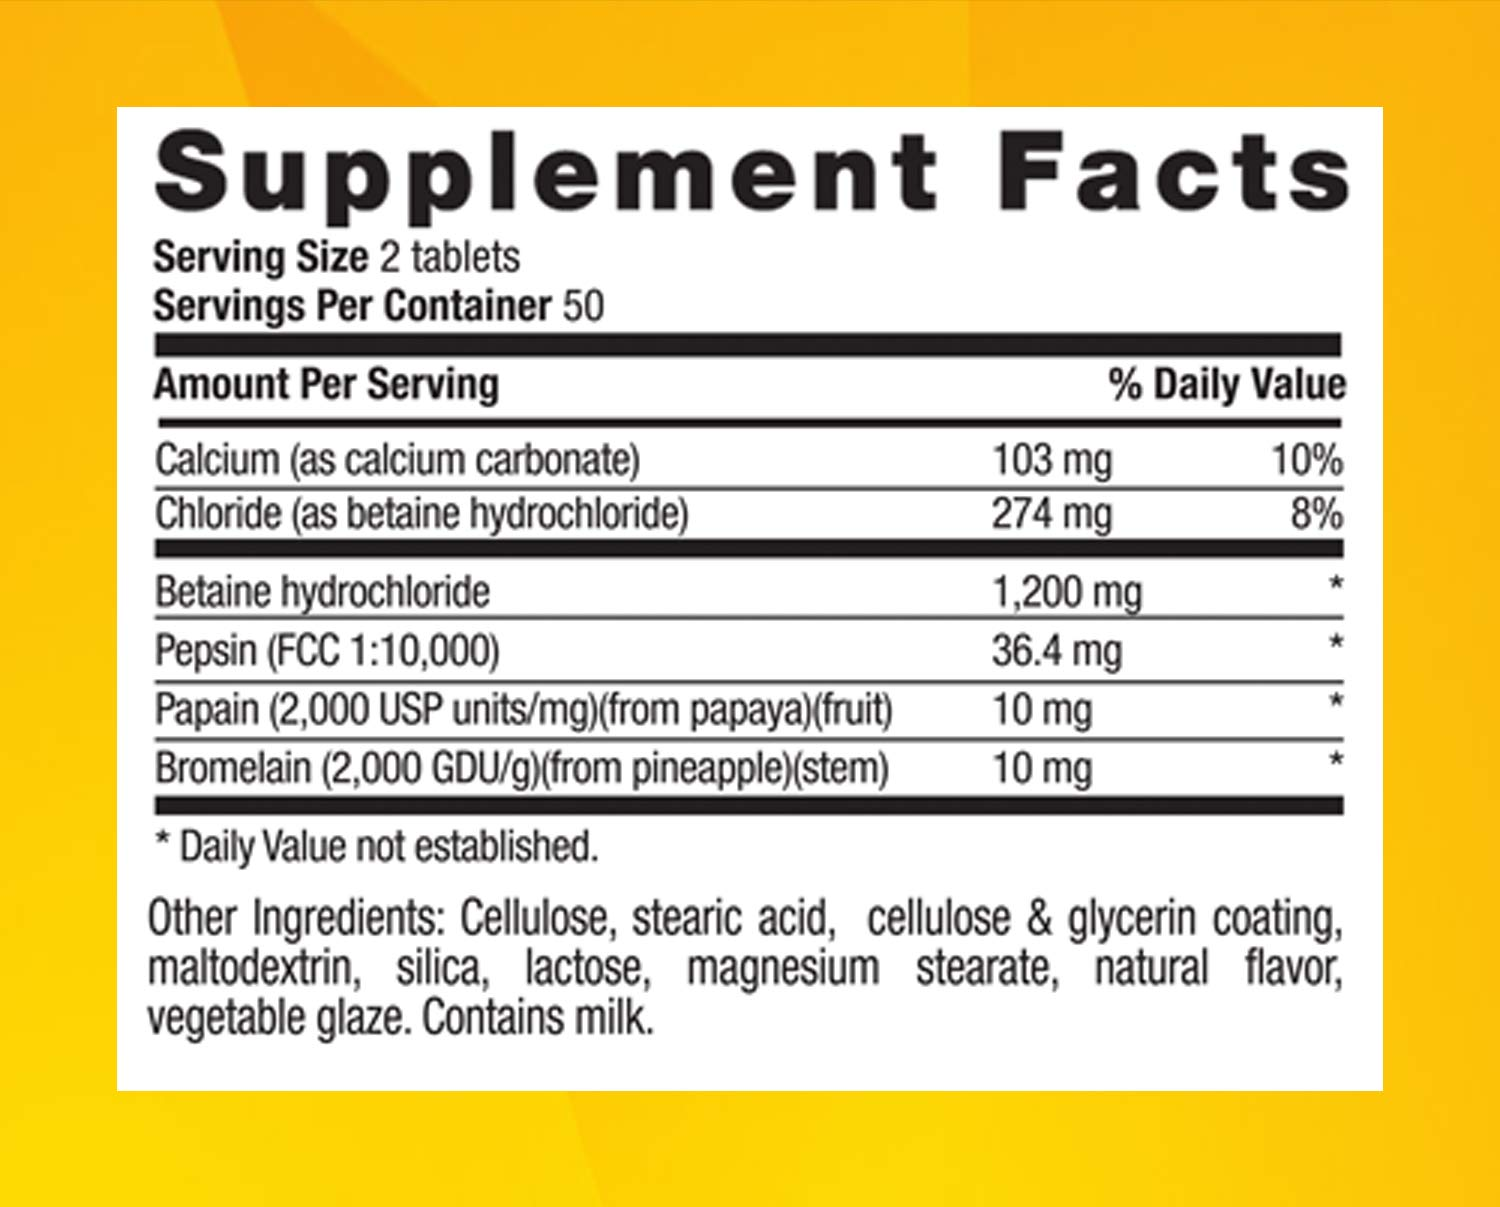 Country Life Betaine Hydrochloride 600 Mg, With Pepsin, 100-Count by Country Life: Amazon.es: Salud y cuidado personal